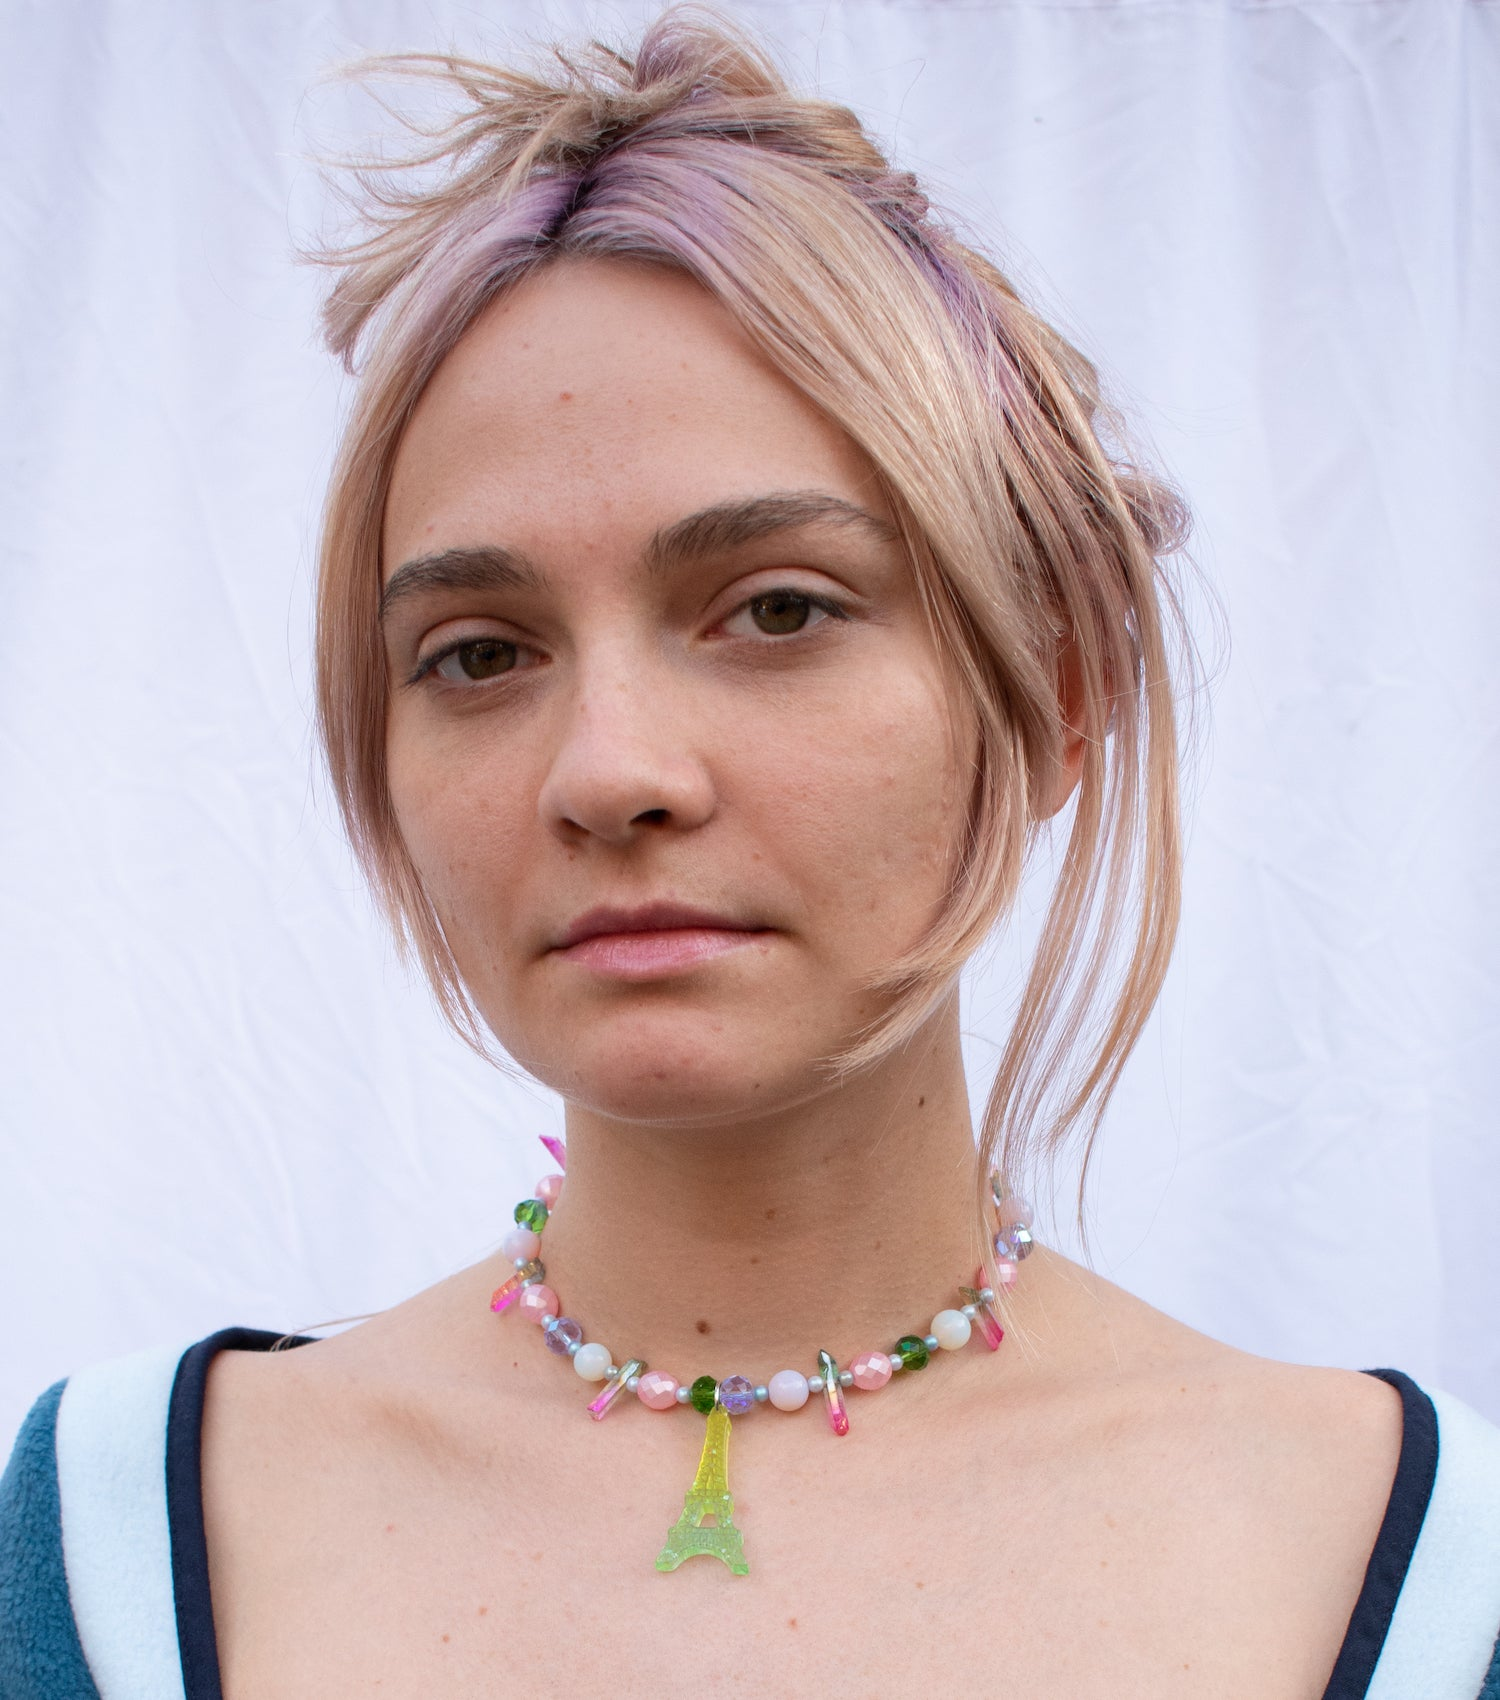 emma pryde, choker, resin, glitter, handmade, los angeles boutique, kathleen, kathleen los angeles, gummie bear, necklace, pearls, freshwater pearls, baroque pearls, kathleen, kathleen los angeles, shop kathleen, kathleen la, crystal necklace, paris necklace, perfume necklace, eiffel tower necklace, french necklace